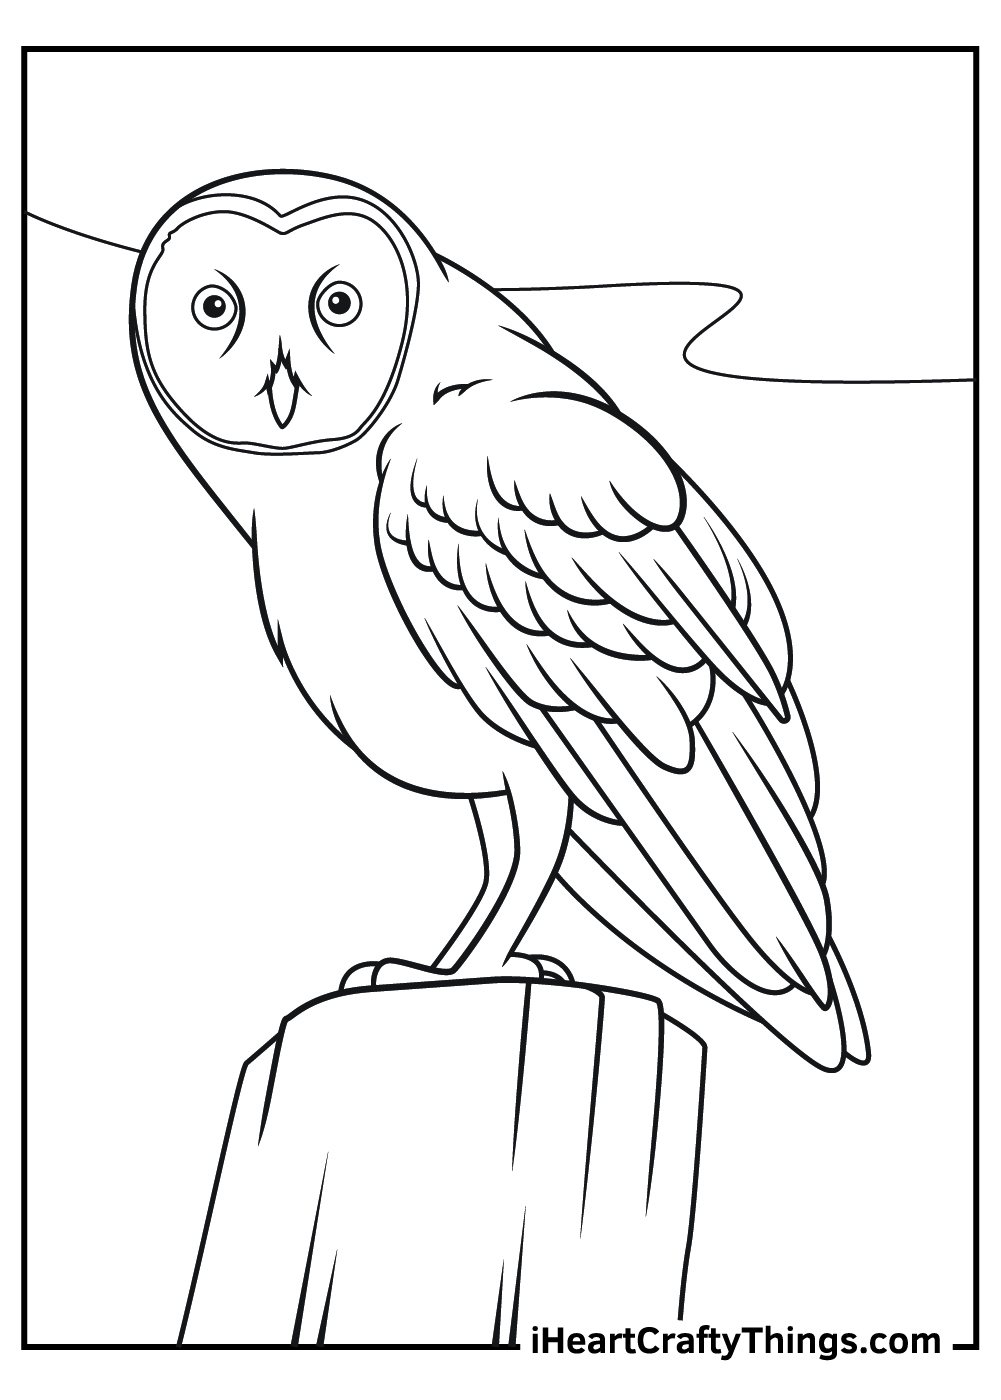 free printable realistic owl coloring pages